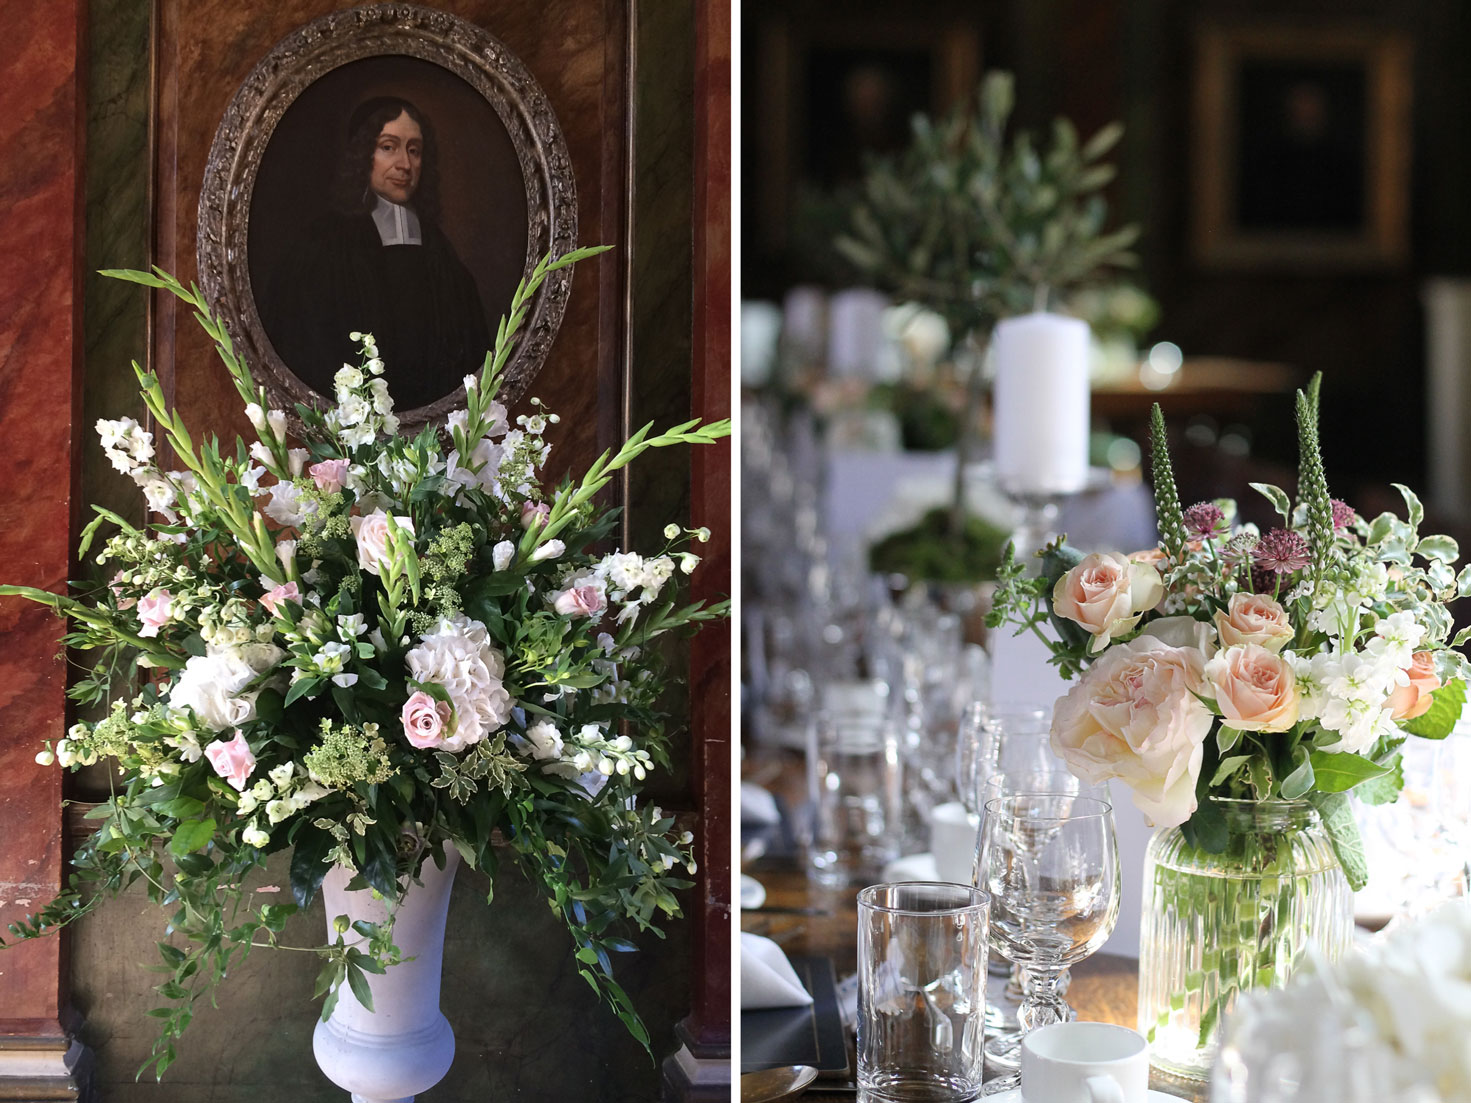 sarah-harper-floral-design-luxury-wedding-florist-flowers-oxfordshite-cotsworlds-gallery-P3-copy